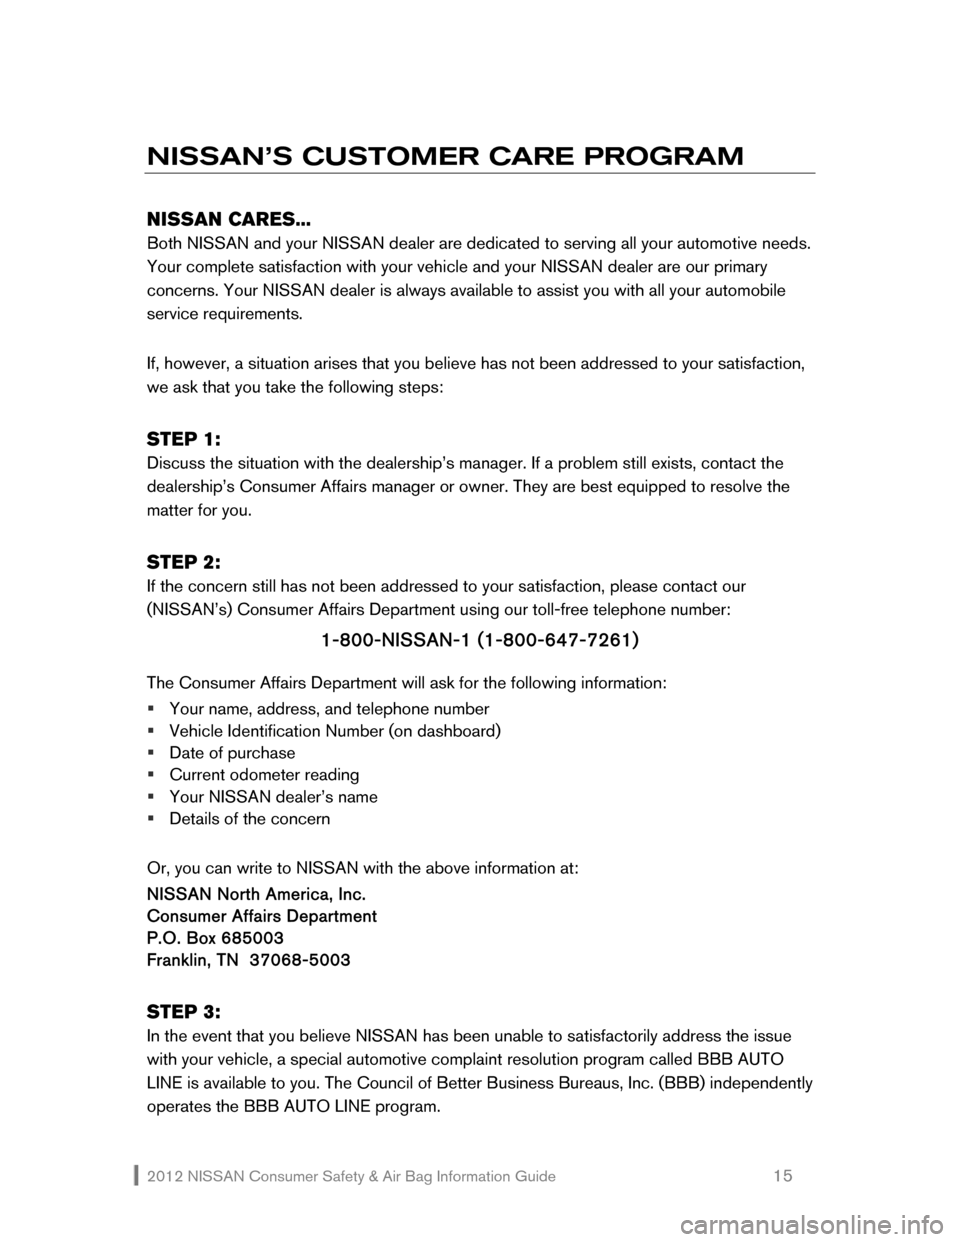 NISSAN ROGUE 2012 1.G Consumer Safety Air Bag Information Guide 2012 NISSAN Consumer Safety & Air Bag Information Guide                                                   15  NISSAN'S CUSTOMER CARE PROGRAM    NISSAN CARES...  Both NISSAN and your NISSAN dealer ar